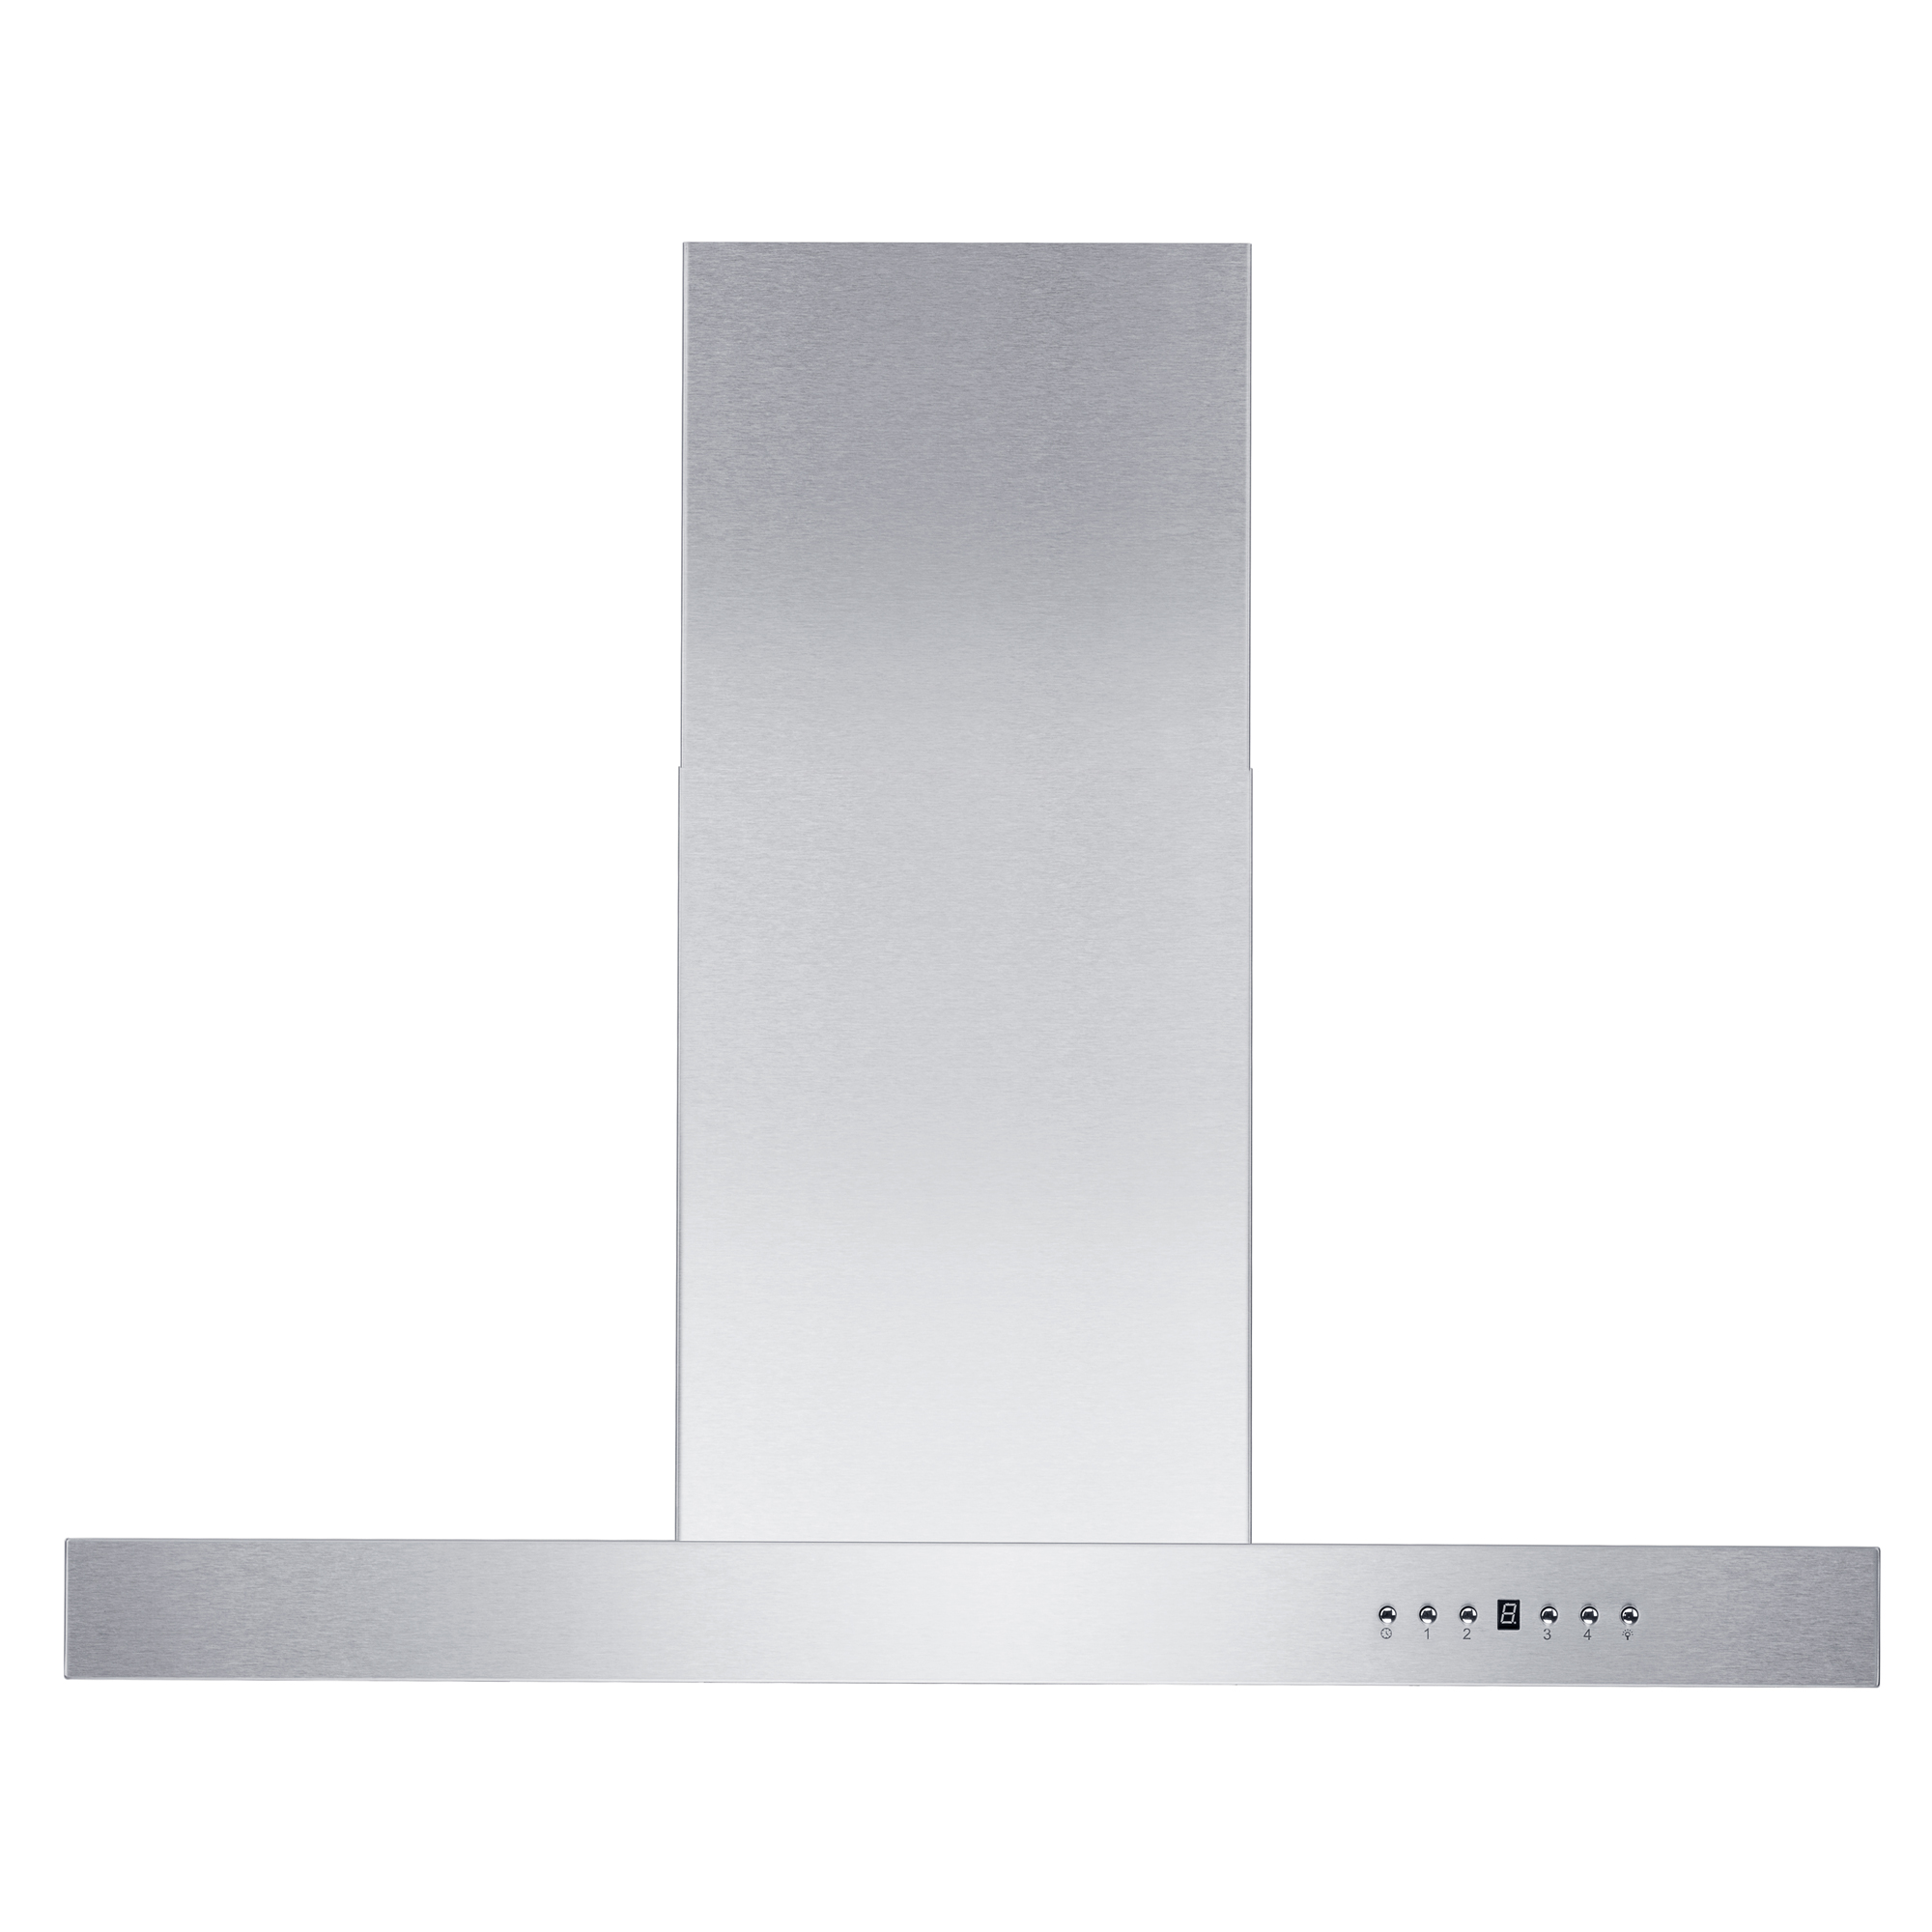 zline-stainless-steel-wall-mounted-range-hood-KE-new-front.jpg